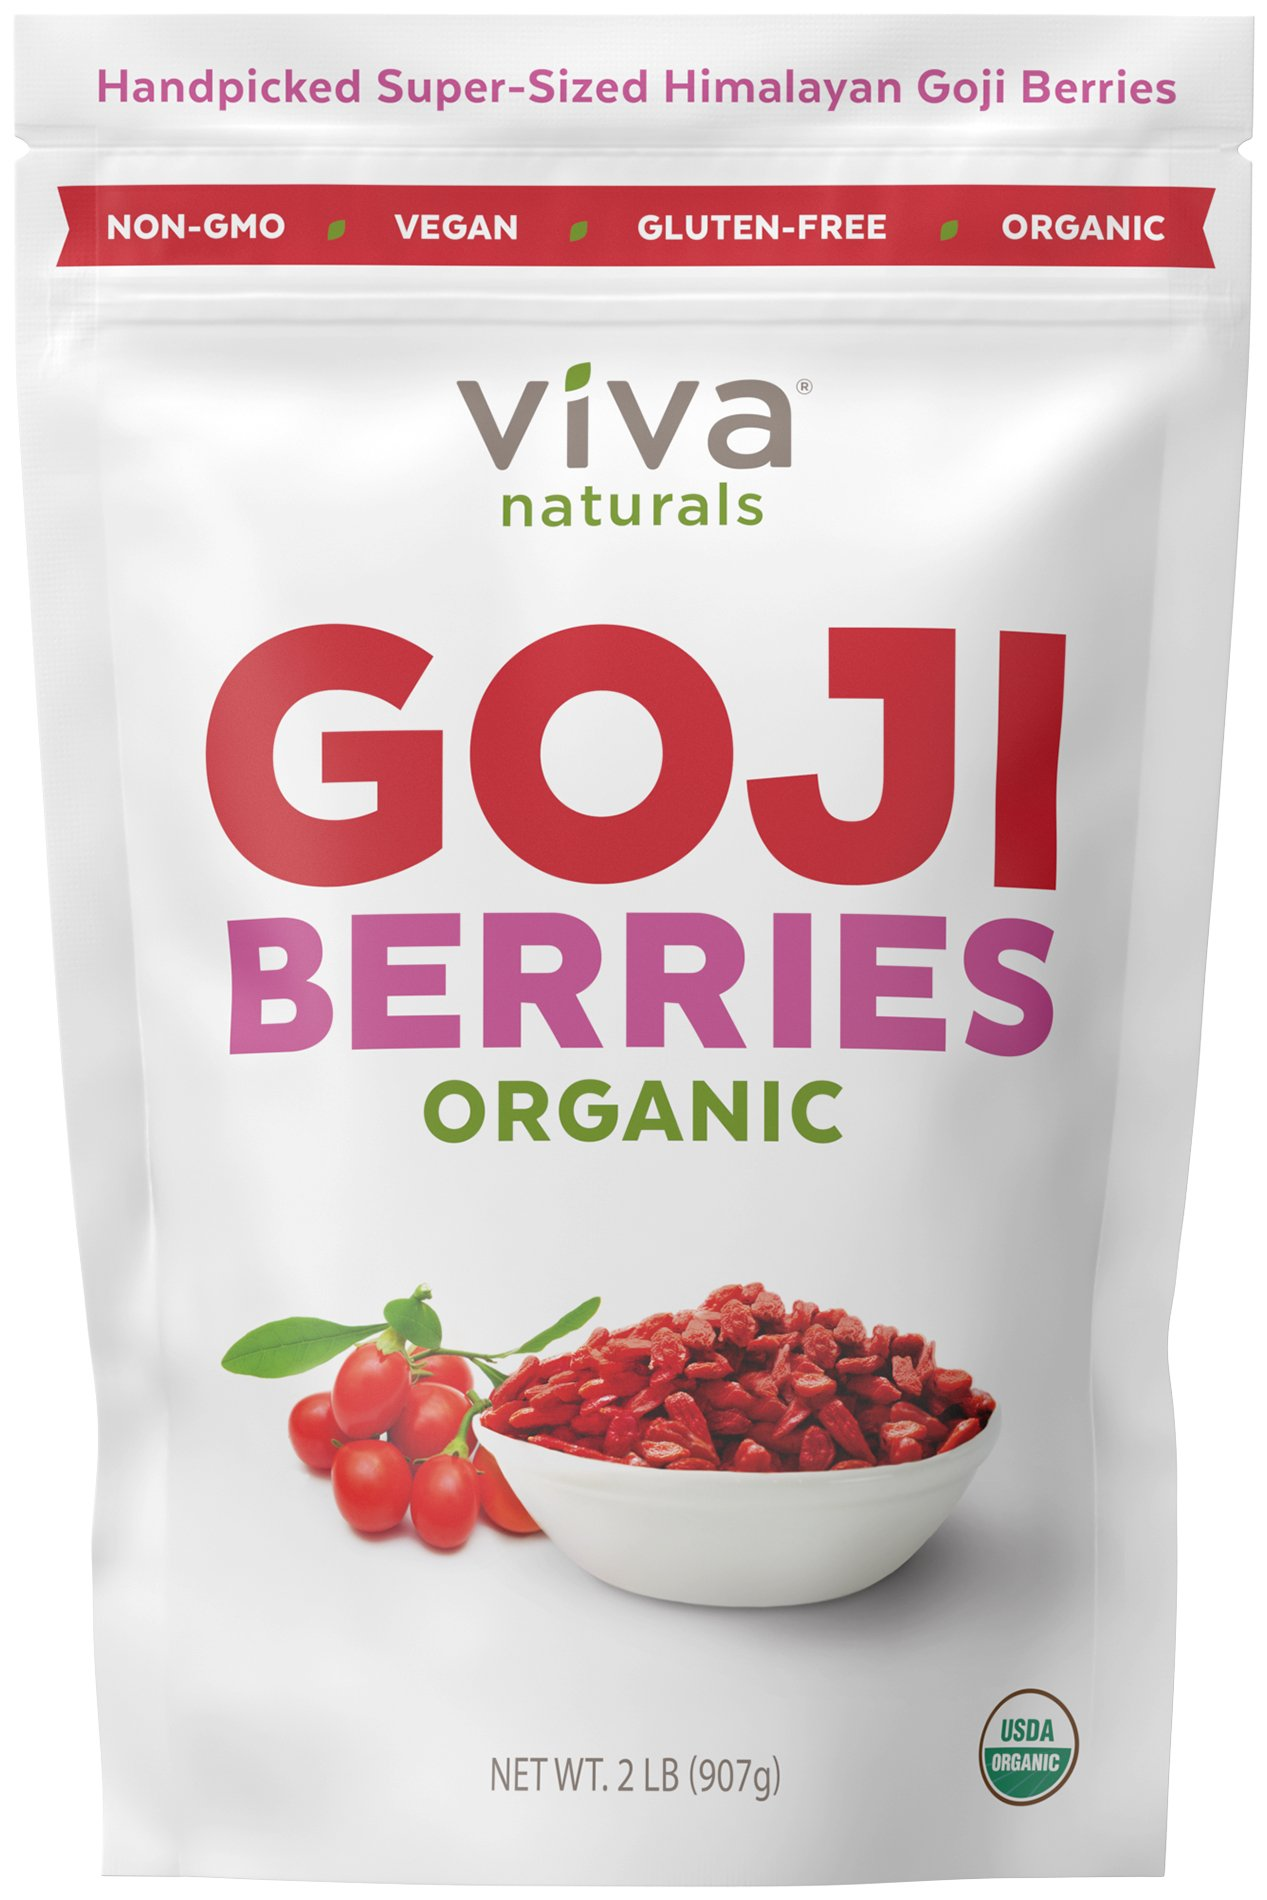 Viva Naturals #1 Premium Himalayan Organic Goji Berries, Noticeably Larger and Juicier, 2lb bag